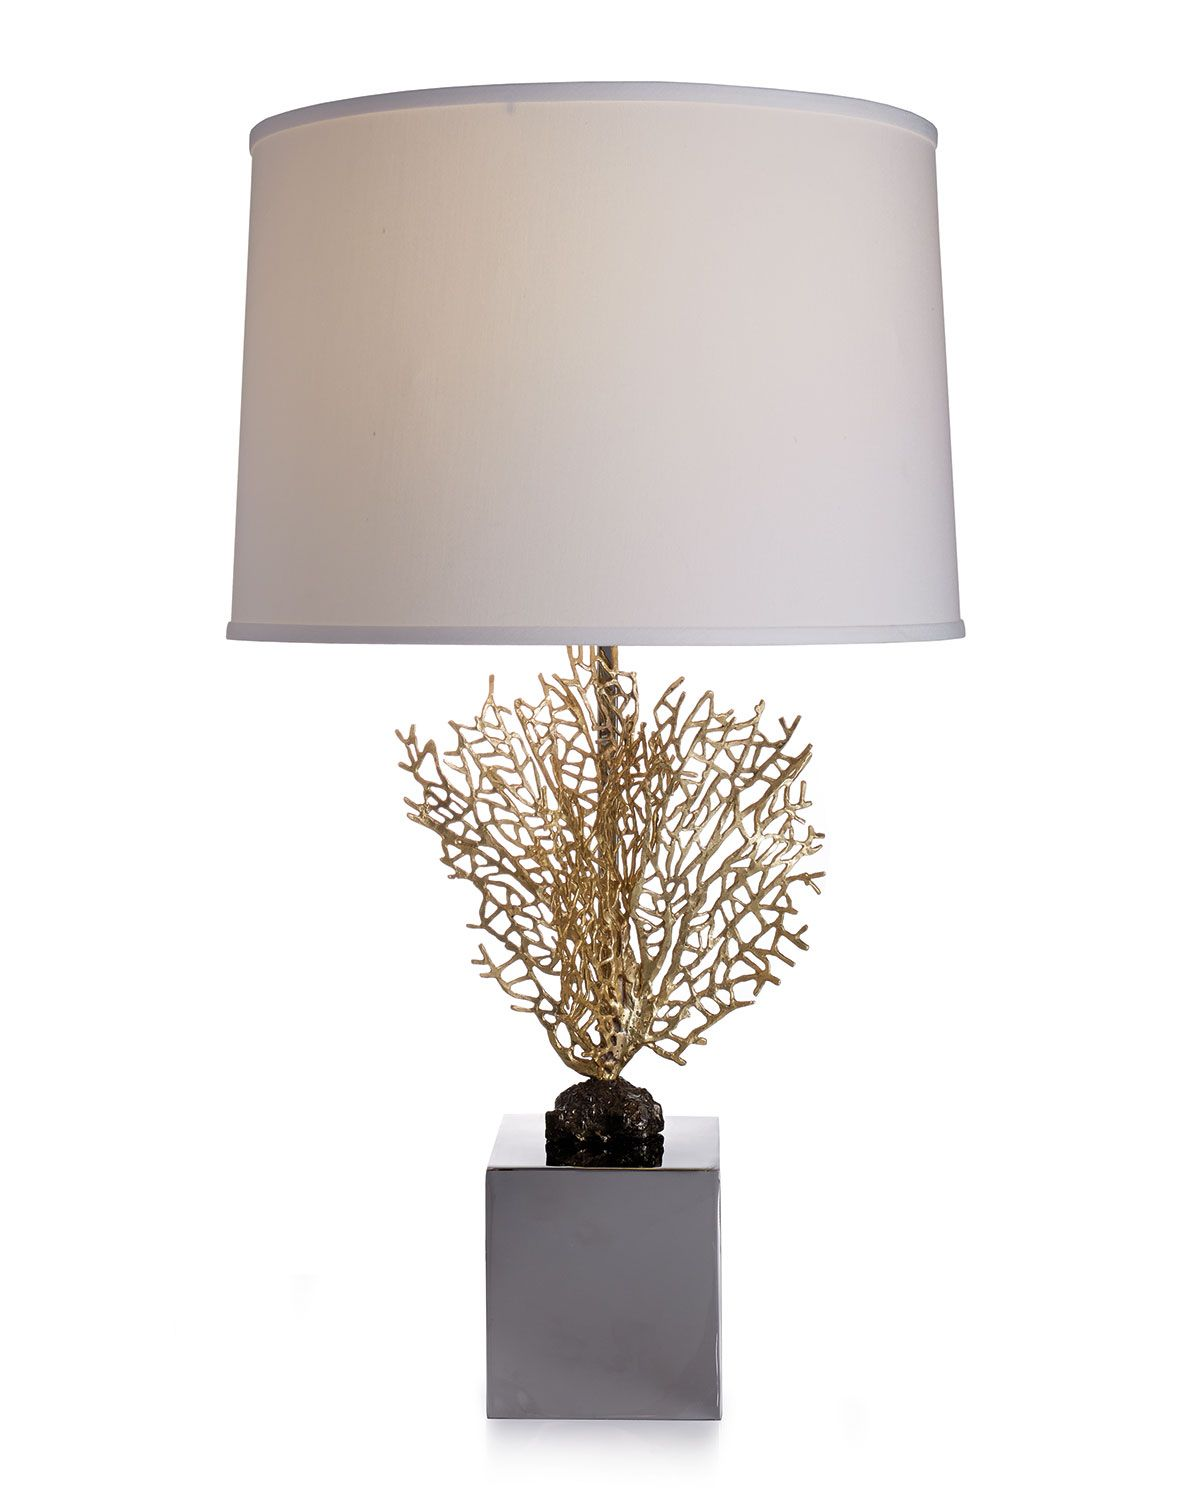 Beleuchtung ideen zu hause fan coral table lamp stainless  michael aram  the art of living